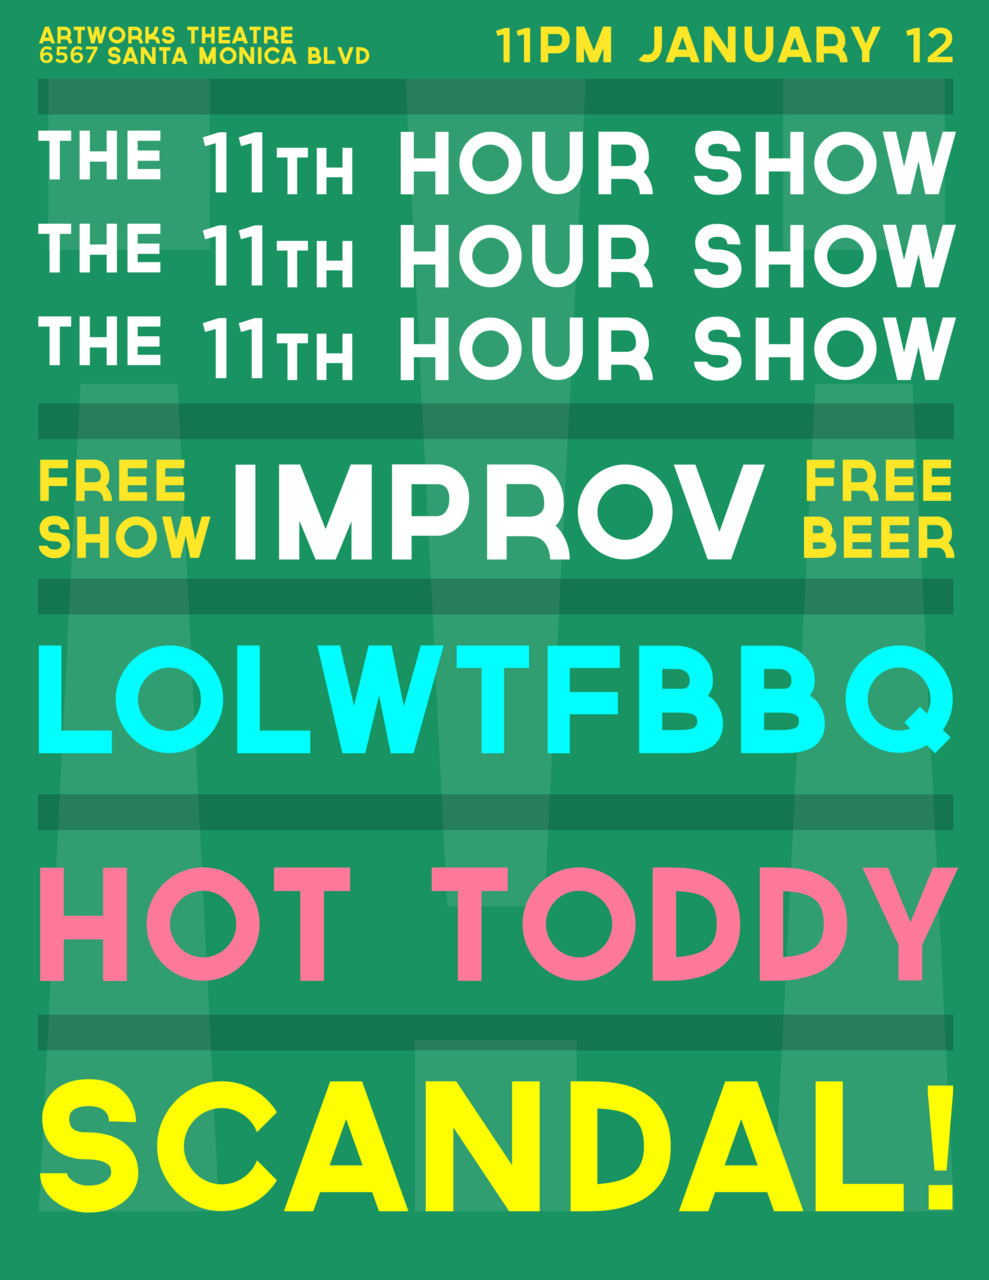 Show Tonight! LOLWTFBBQ - Tim Chang, Greg Jones, Lara Zvirbulis, Carmen Angelina, Phil Andrew, Jimmy Bowman, Stephanie Bently, Mithun DalalHOT TODDY - D. Bartholomew, Chris McGowan, Robyn Norris, Amanda Barnes, Abhaya  Hess, Matt Mahoney, Neil Ruddy, Toby Wilson, Lauri Roggenkampand Special Guests, UCB Harold Team…SCANDAL! - Lindsey Barrow, Mike Bradecich, Farley Elliot, Ali Ghandour, Anne Lane, Scott Neiman, Steve Szlaga, Brandon Weaver   followed by The Midnight Jam (get on stage and play!) Artworks Theatre & Studios6583 Santa Monica Blvd. (Studio A)Los Angeles, CA 11pm Hosted by Imaginary Friends FREE ADMISSIONFREE BEER & WATERFREE PARKING (in our lot) **we run on your donations, so please give what you can** the11thhourshow:  Poster design by Danny Cohen